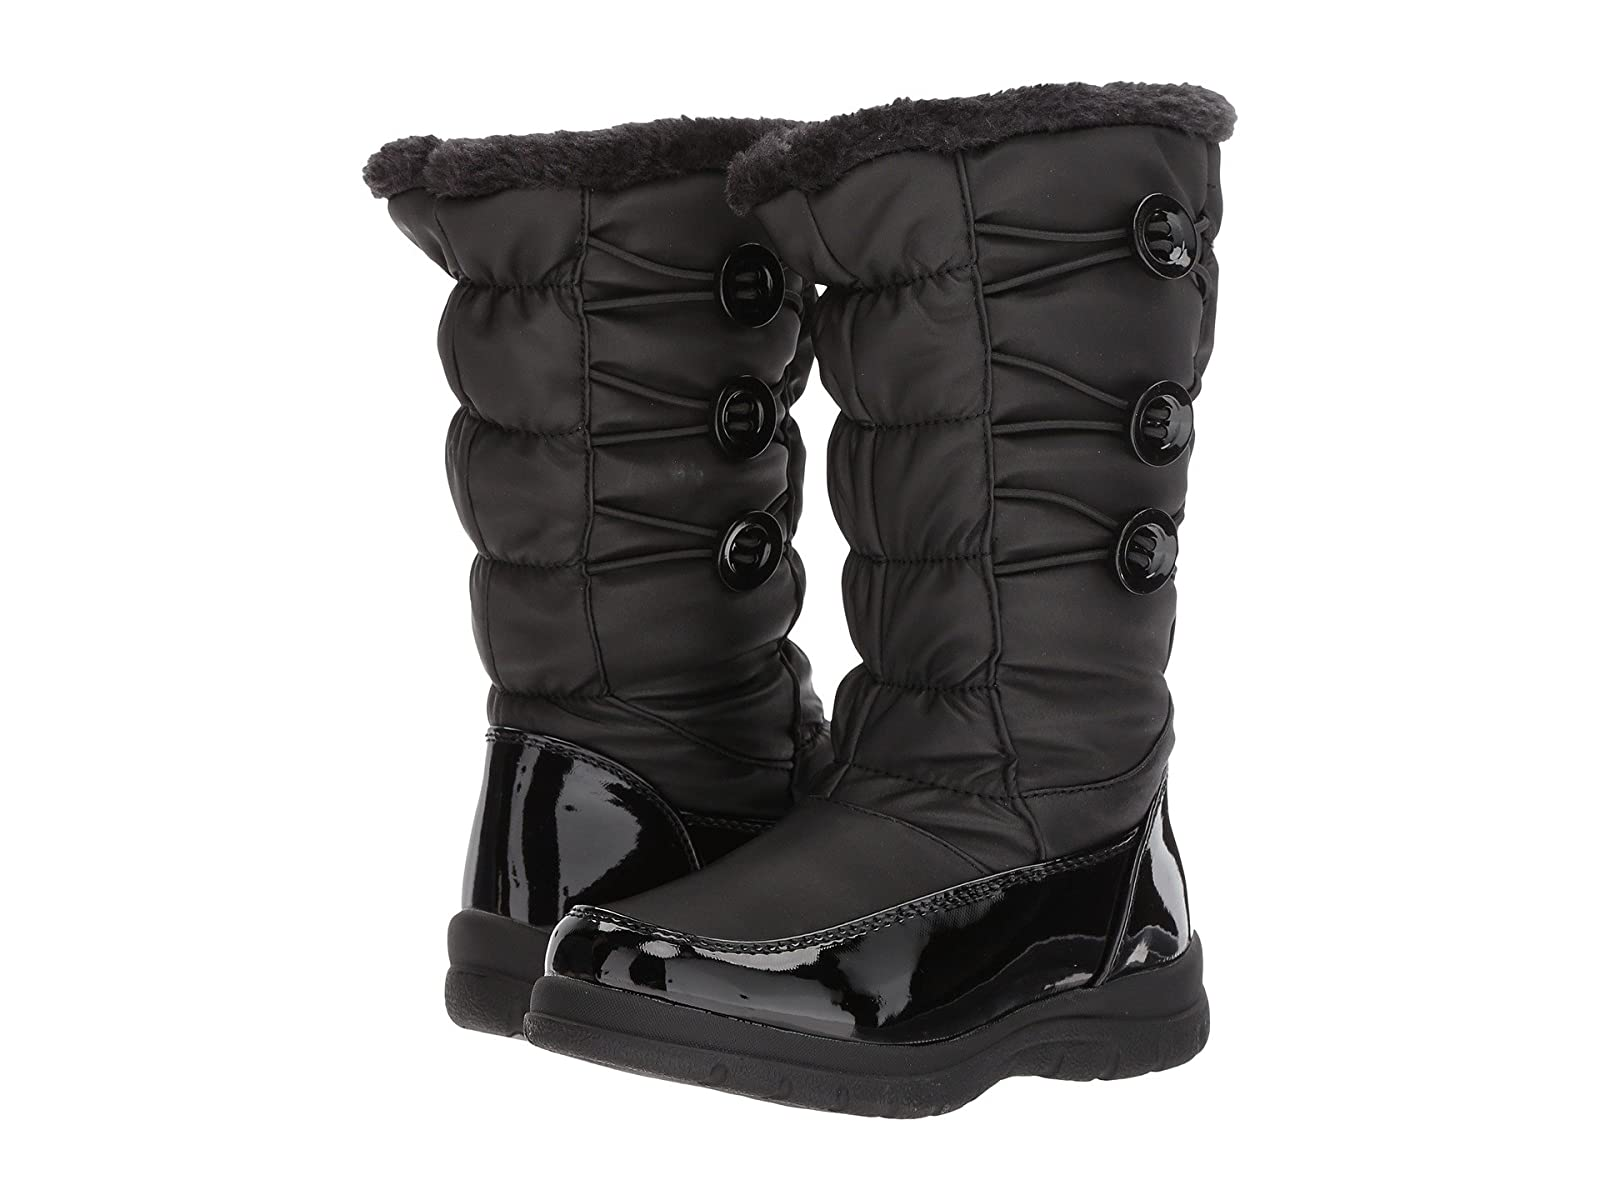 Tundra Boots Kids Chelsea (Little Kid/Big Kid)Cheap and distinctive eye-catching shoes